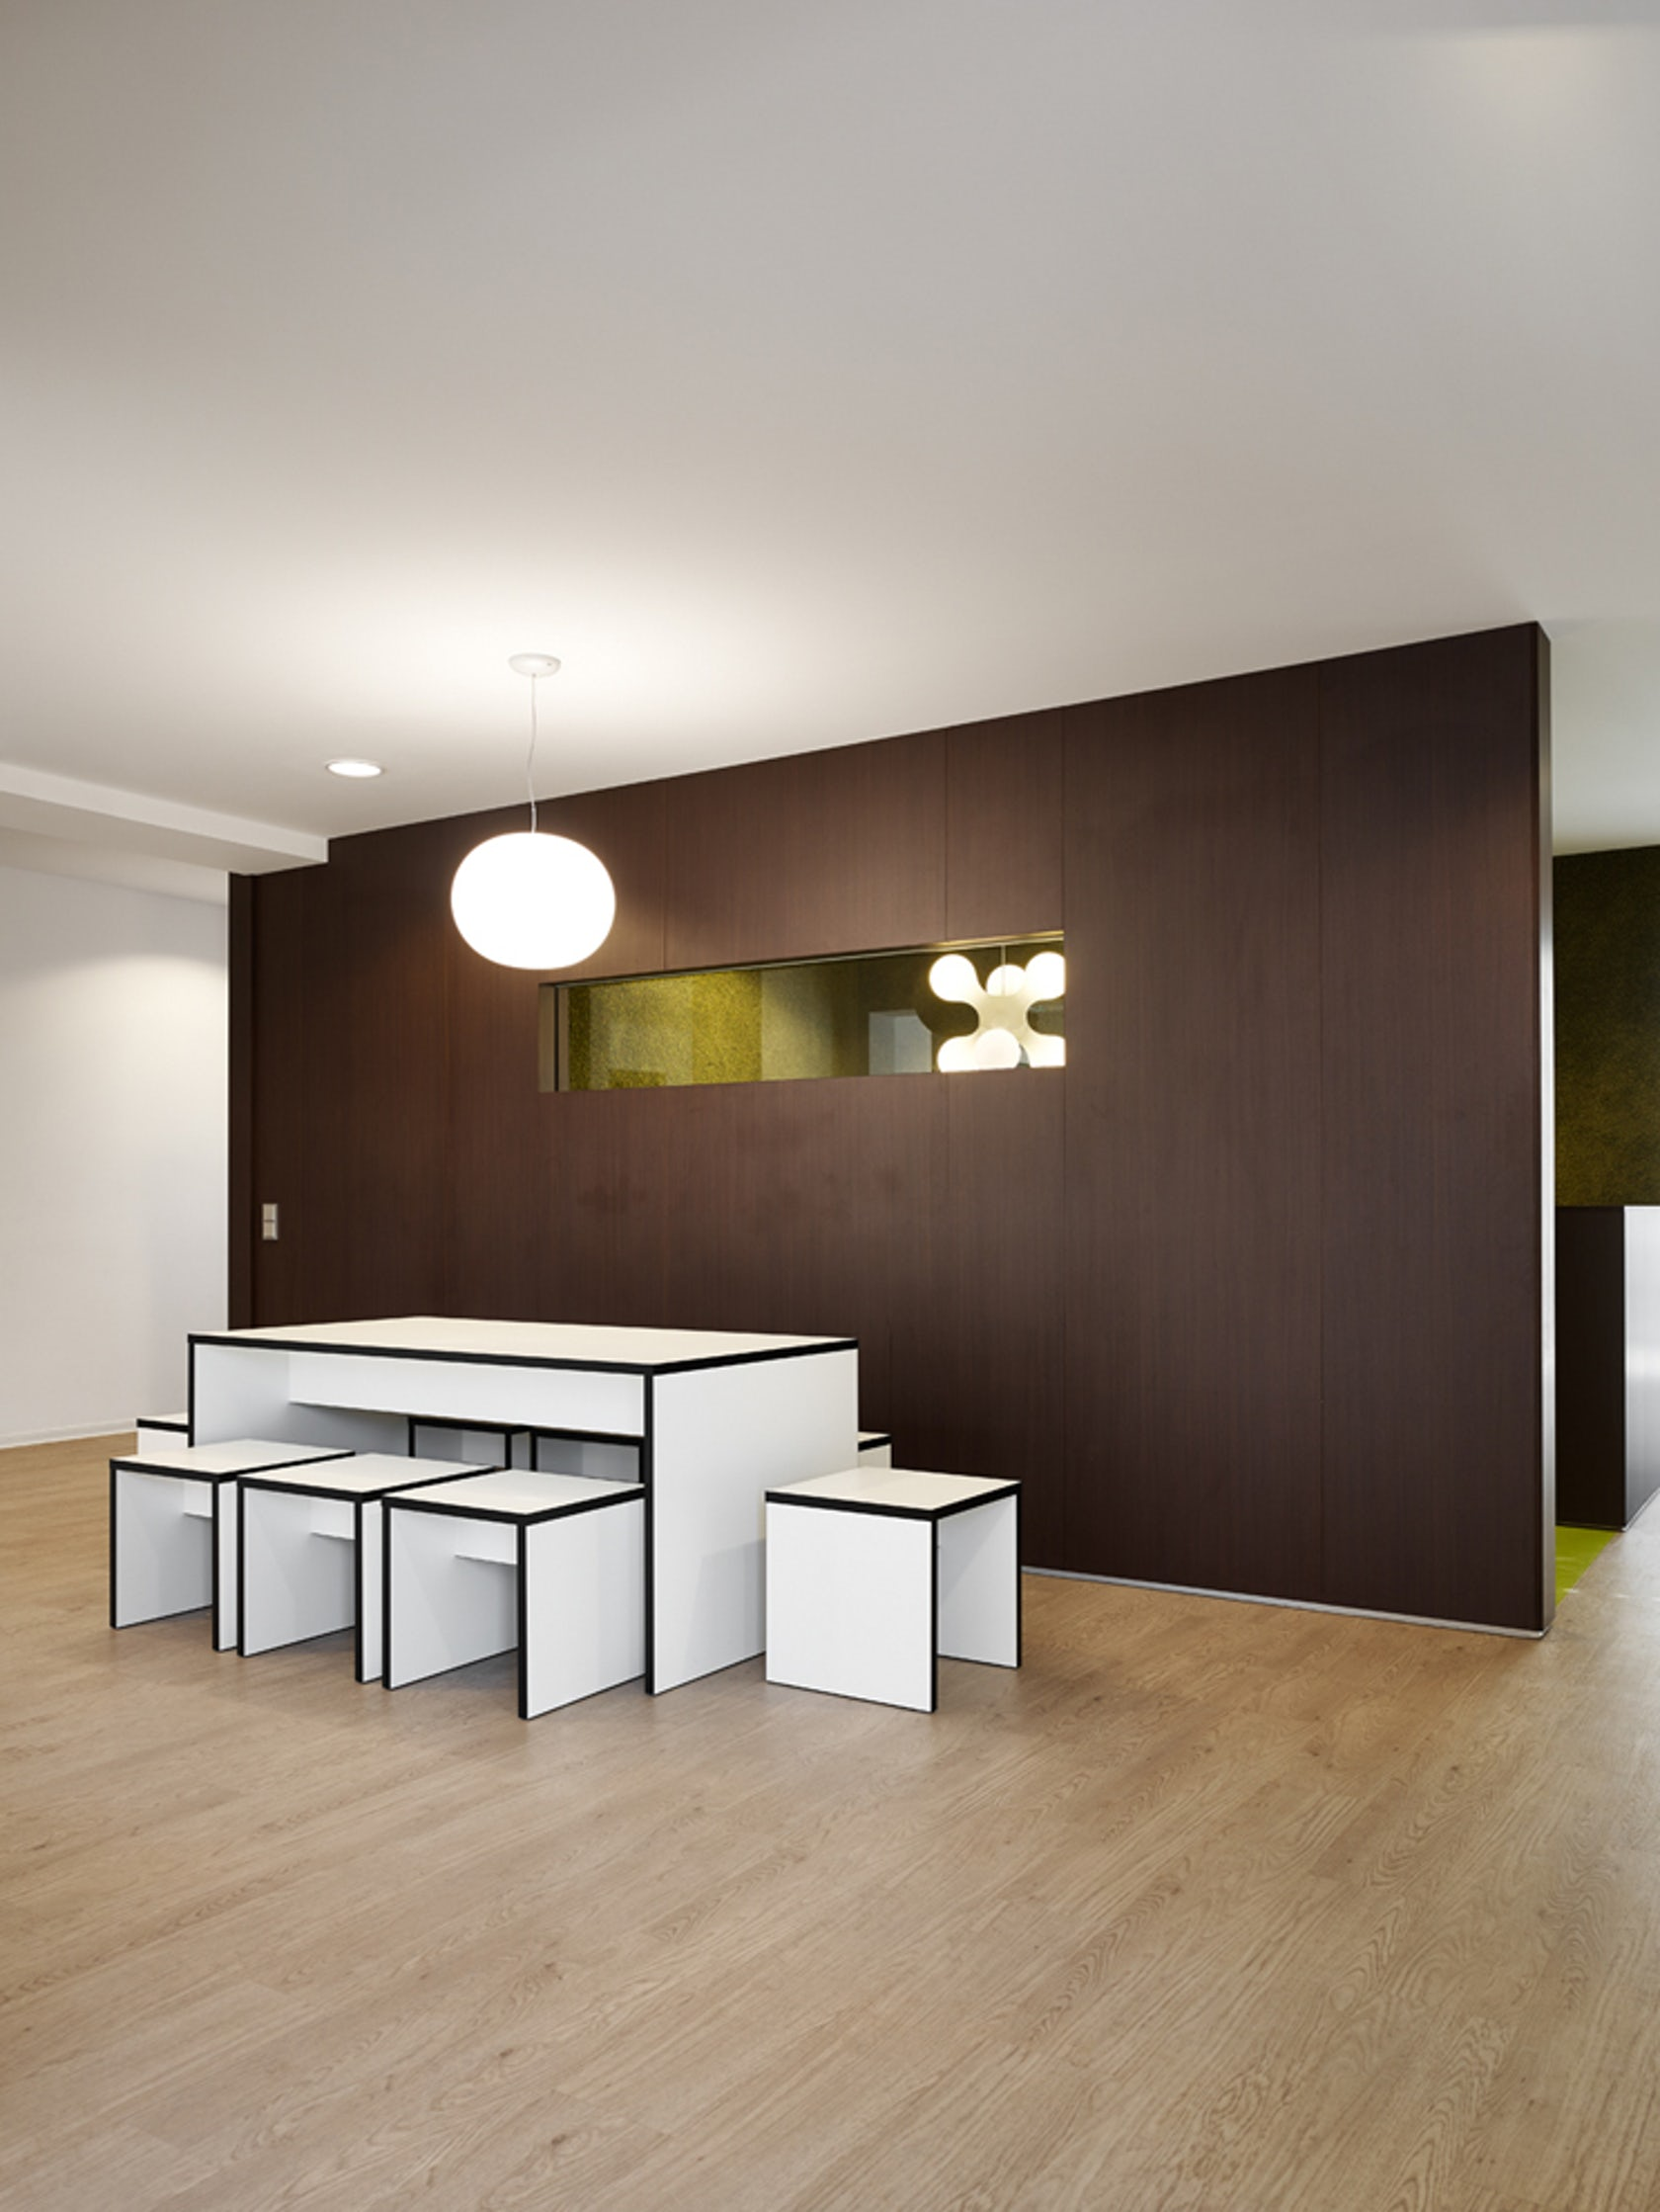 campus viva munich architizer. Black Bedroom Furniture Sets. Home Design Ideas